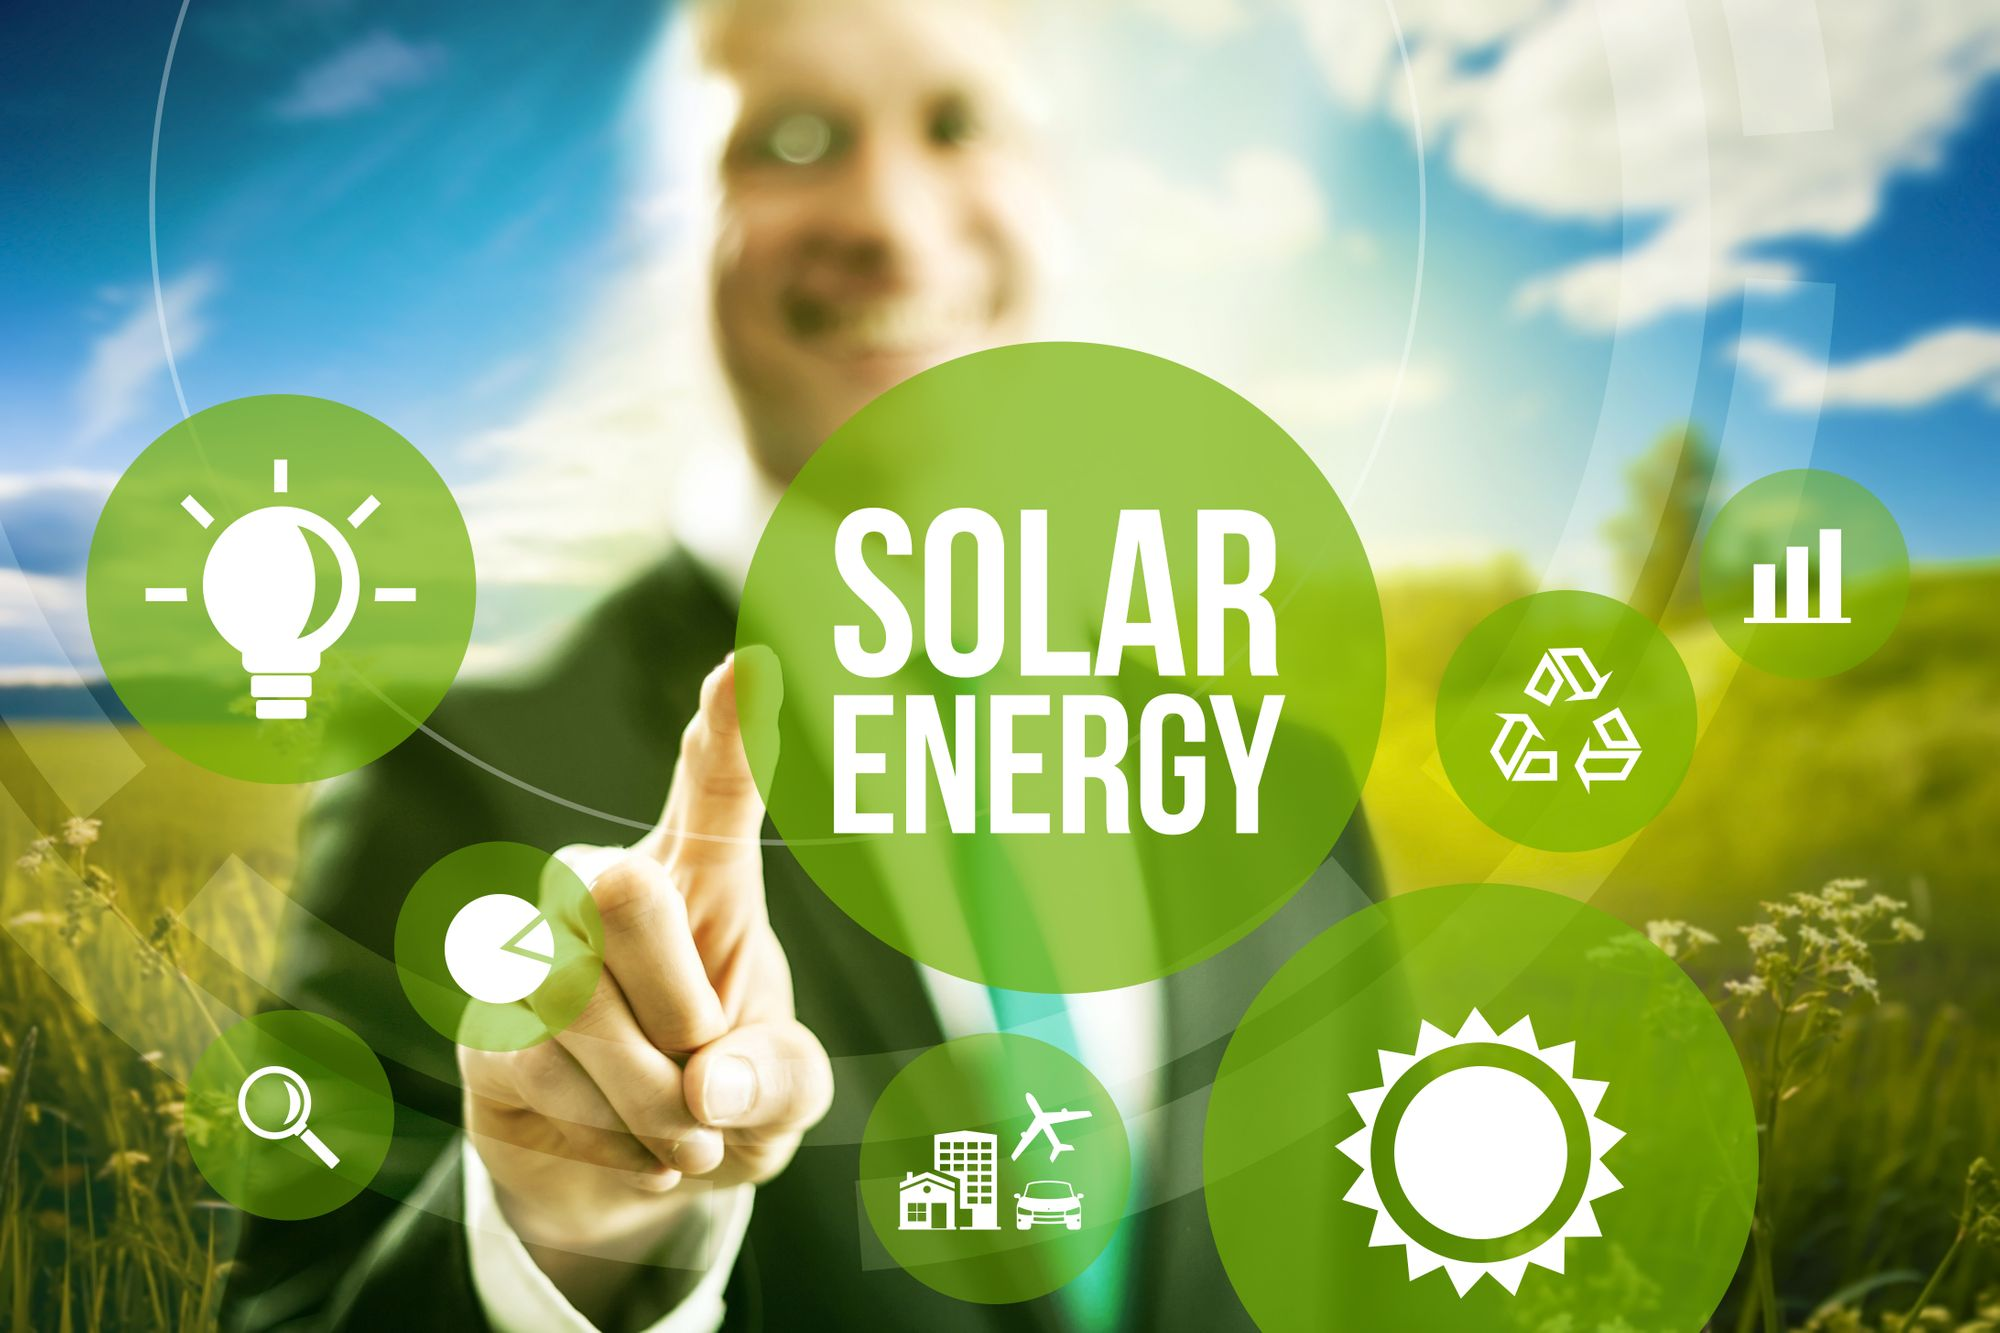 What Are The Pros And Cons Of Solar Energy?